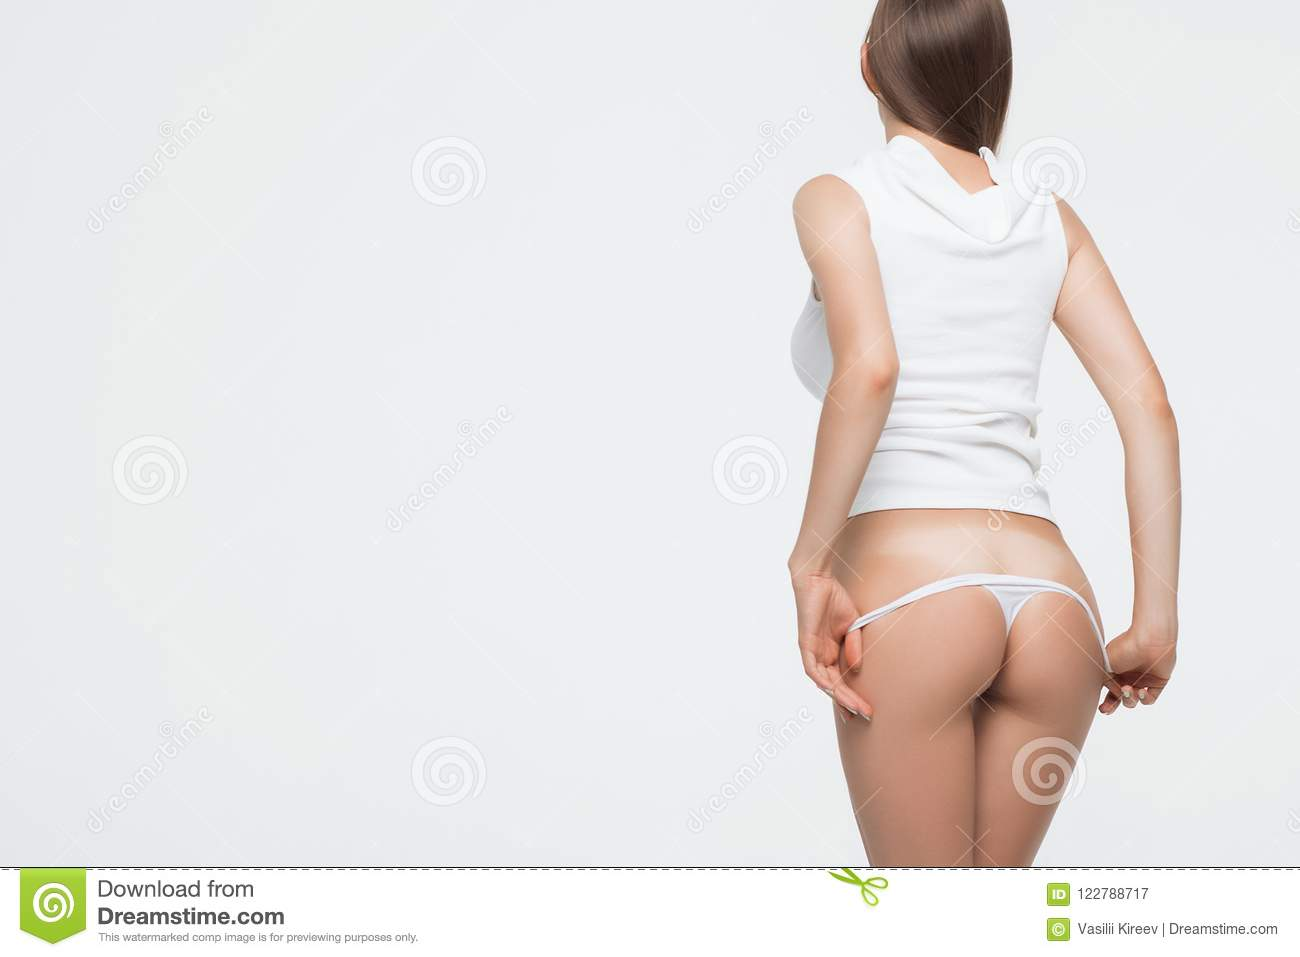 409c111693 Crop back view of anonymous seductive female standing and removing thong